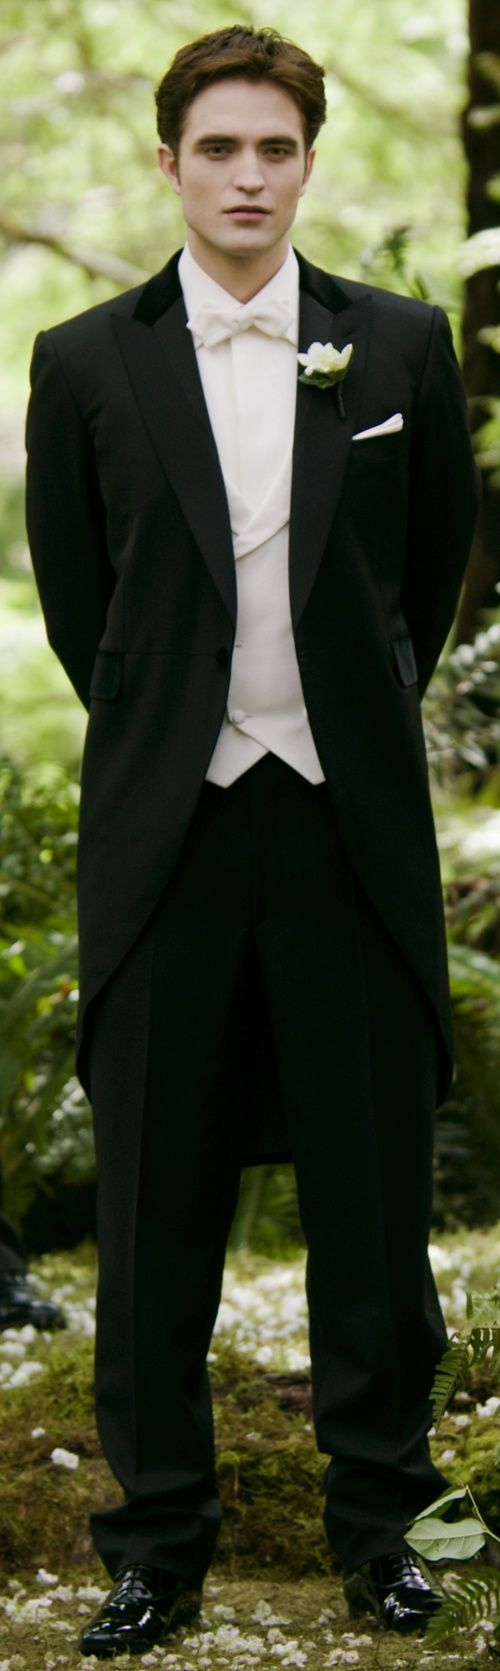 Edward Cullen wearing his wedding suit, Breaking Dawn Part 1